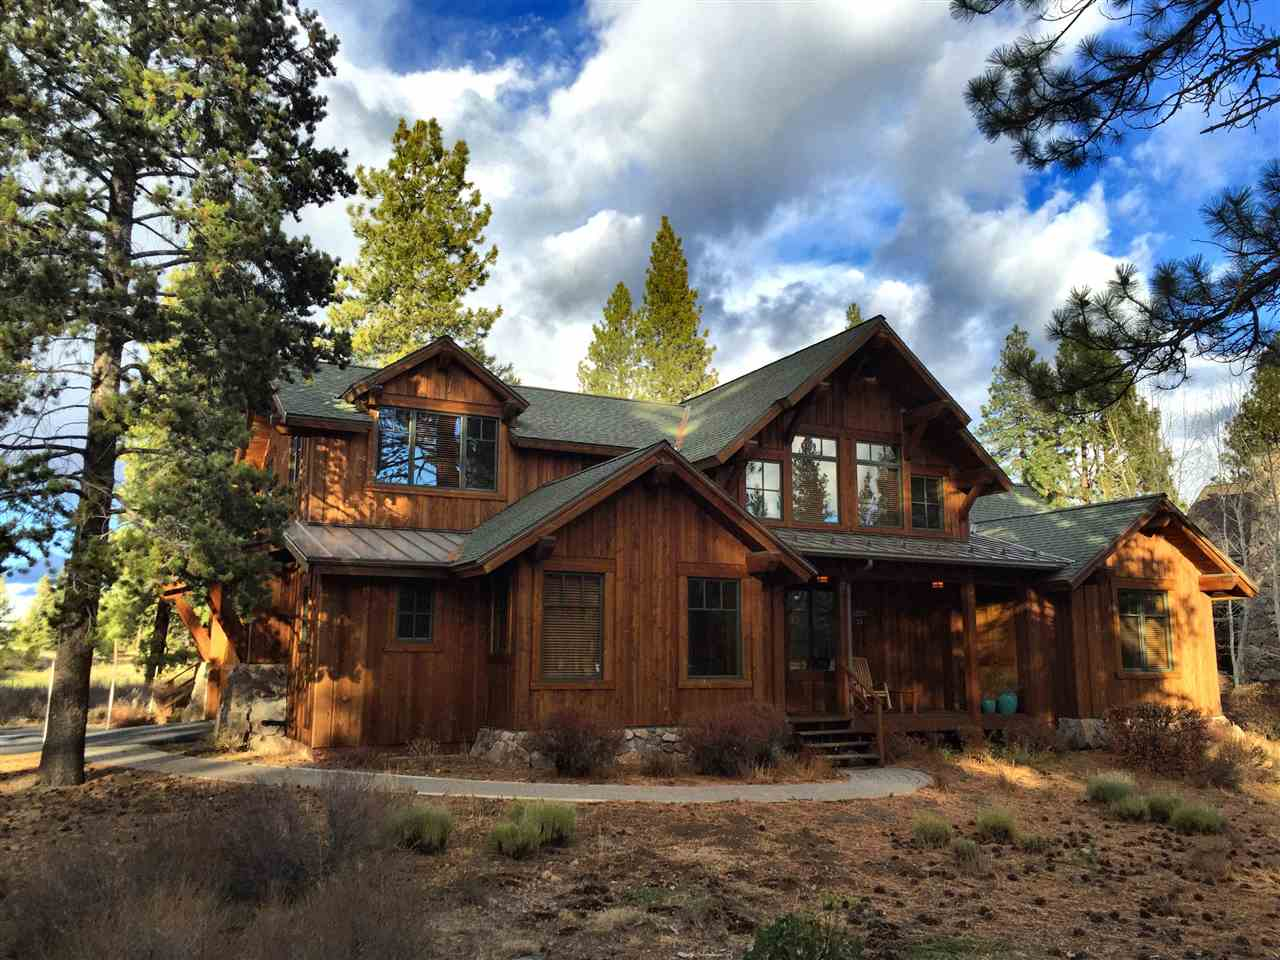 Image for 12359 Lookout Loop, Truckee, CA 96161